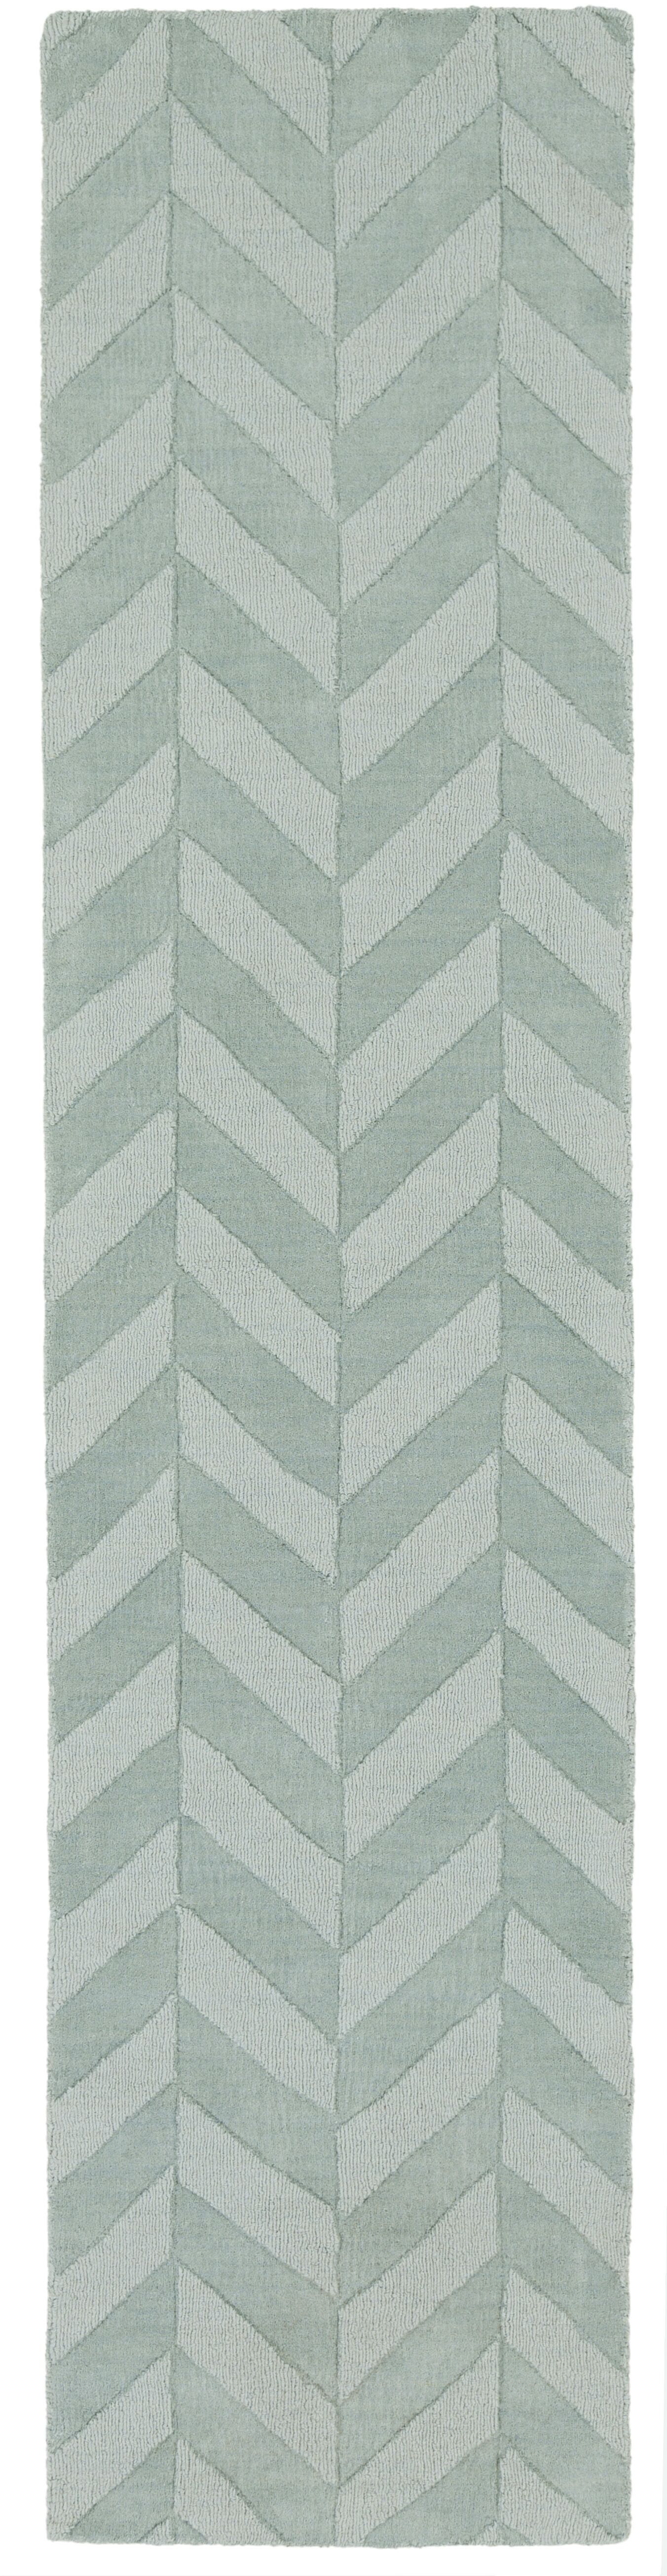 Sunburst Hand Woven Wool Teal Area Rug Rug Size: Runner 2'3